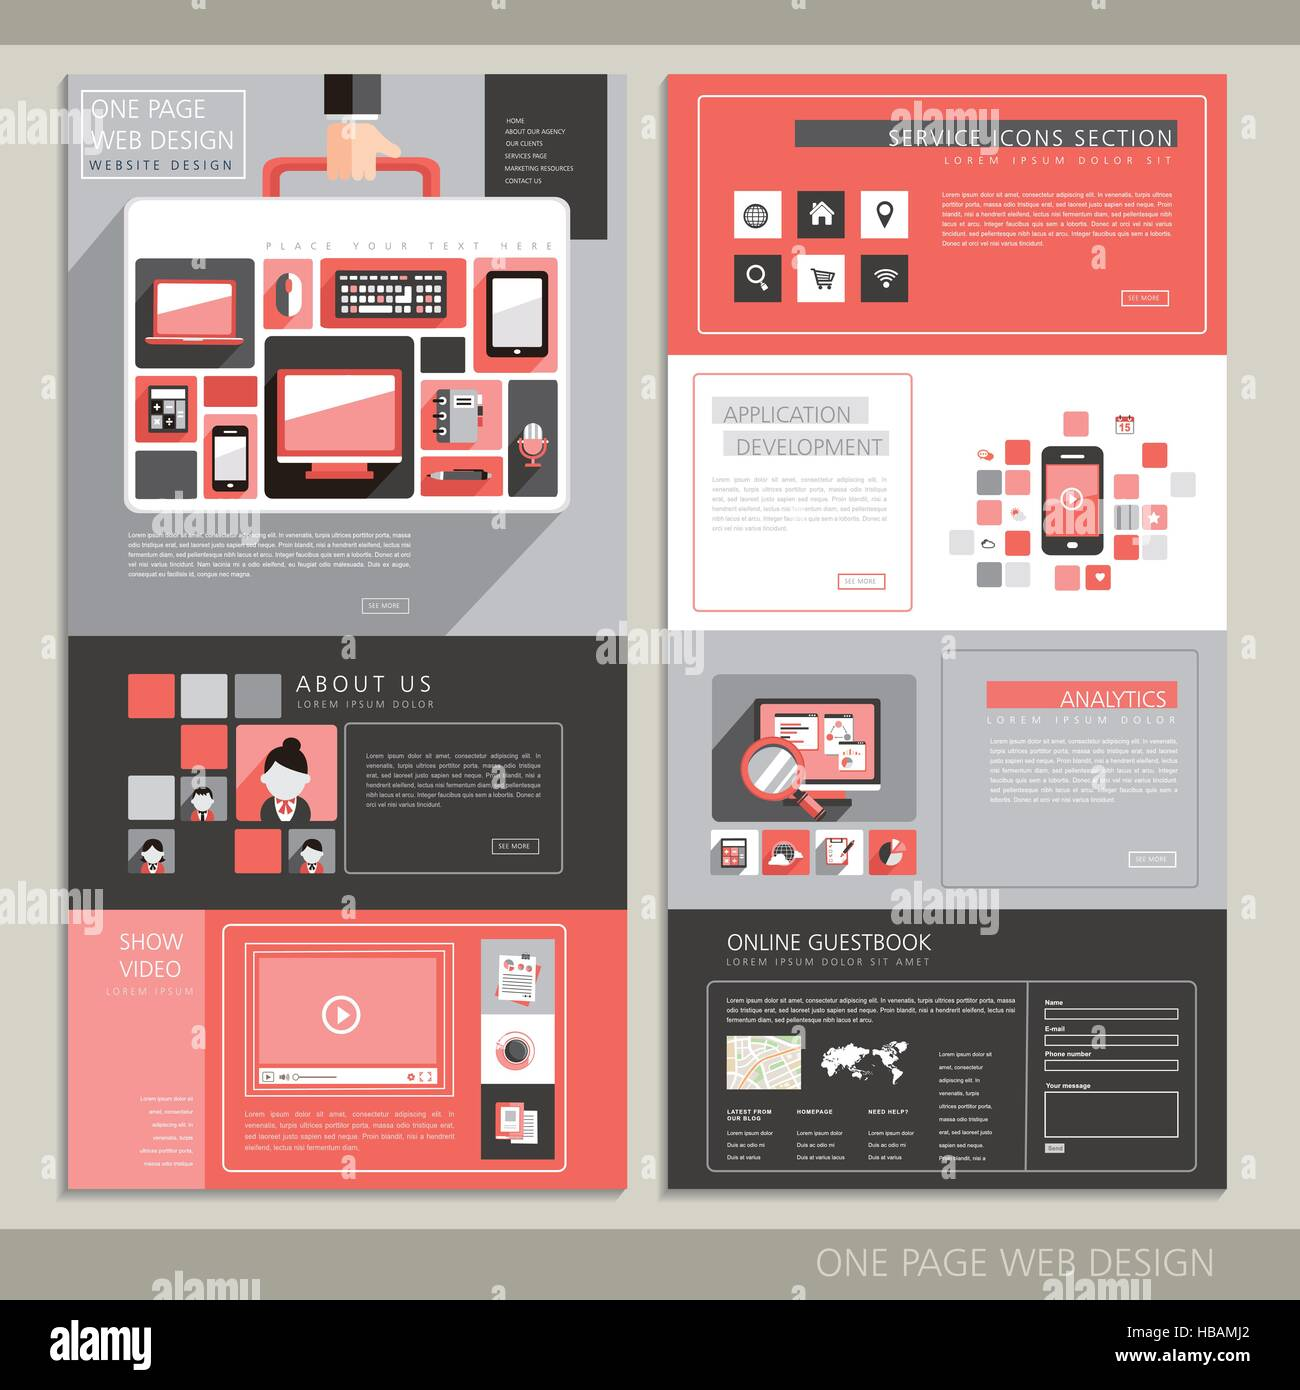 Technology Style One Page Website Stock Photos & Technology Style ...